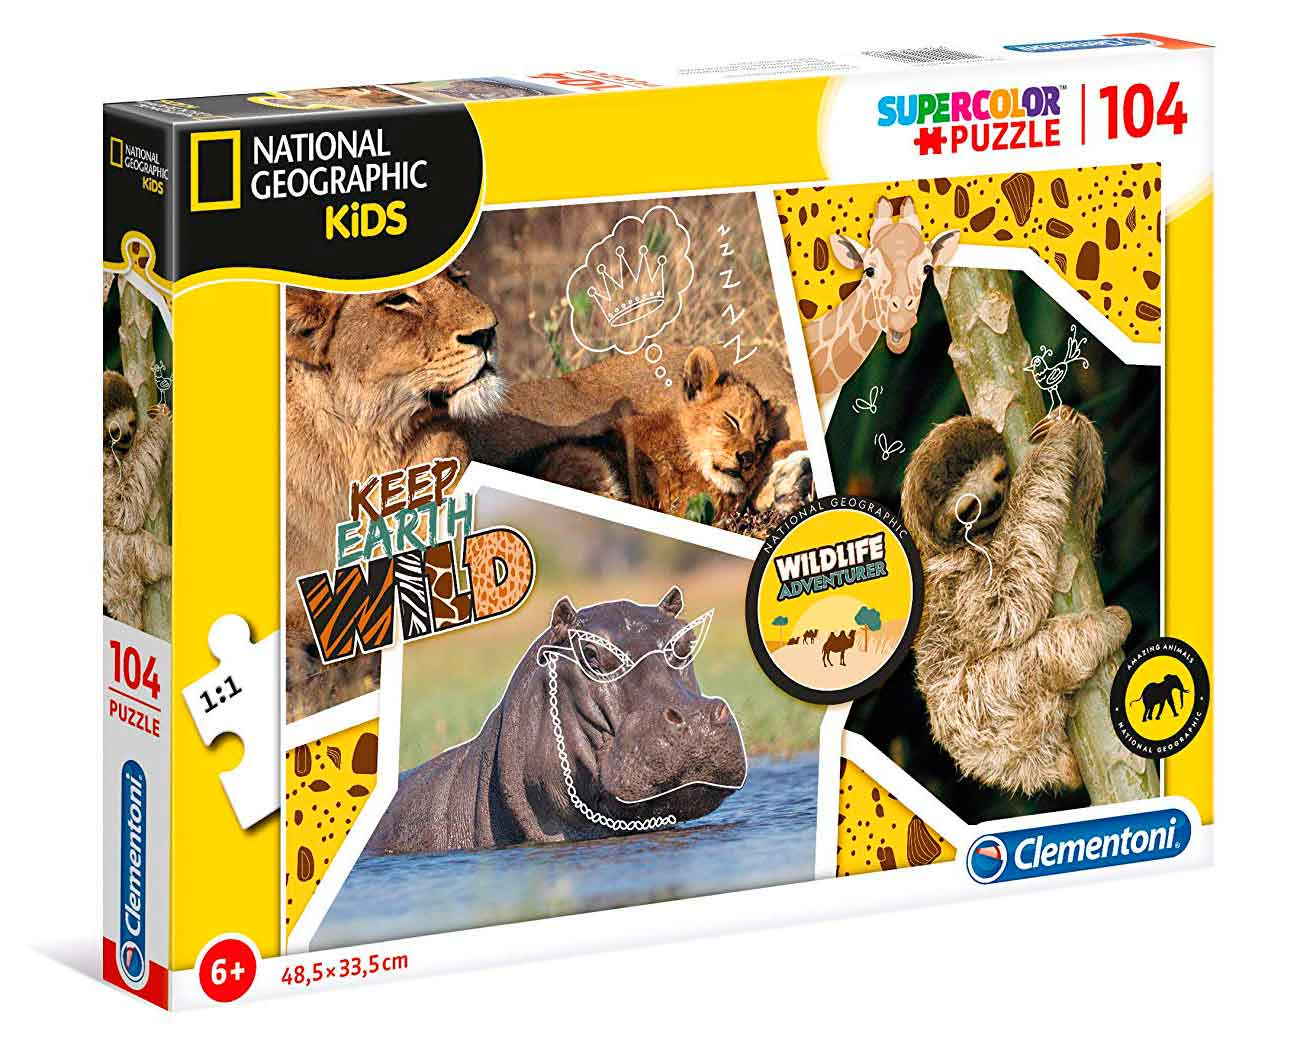 Puzzle Clementoni National Geographic Keep Herth Wild de 104 Pzs